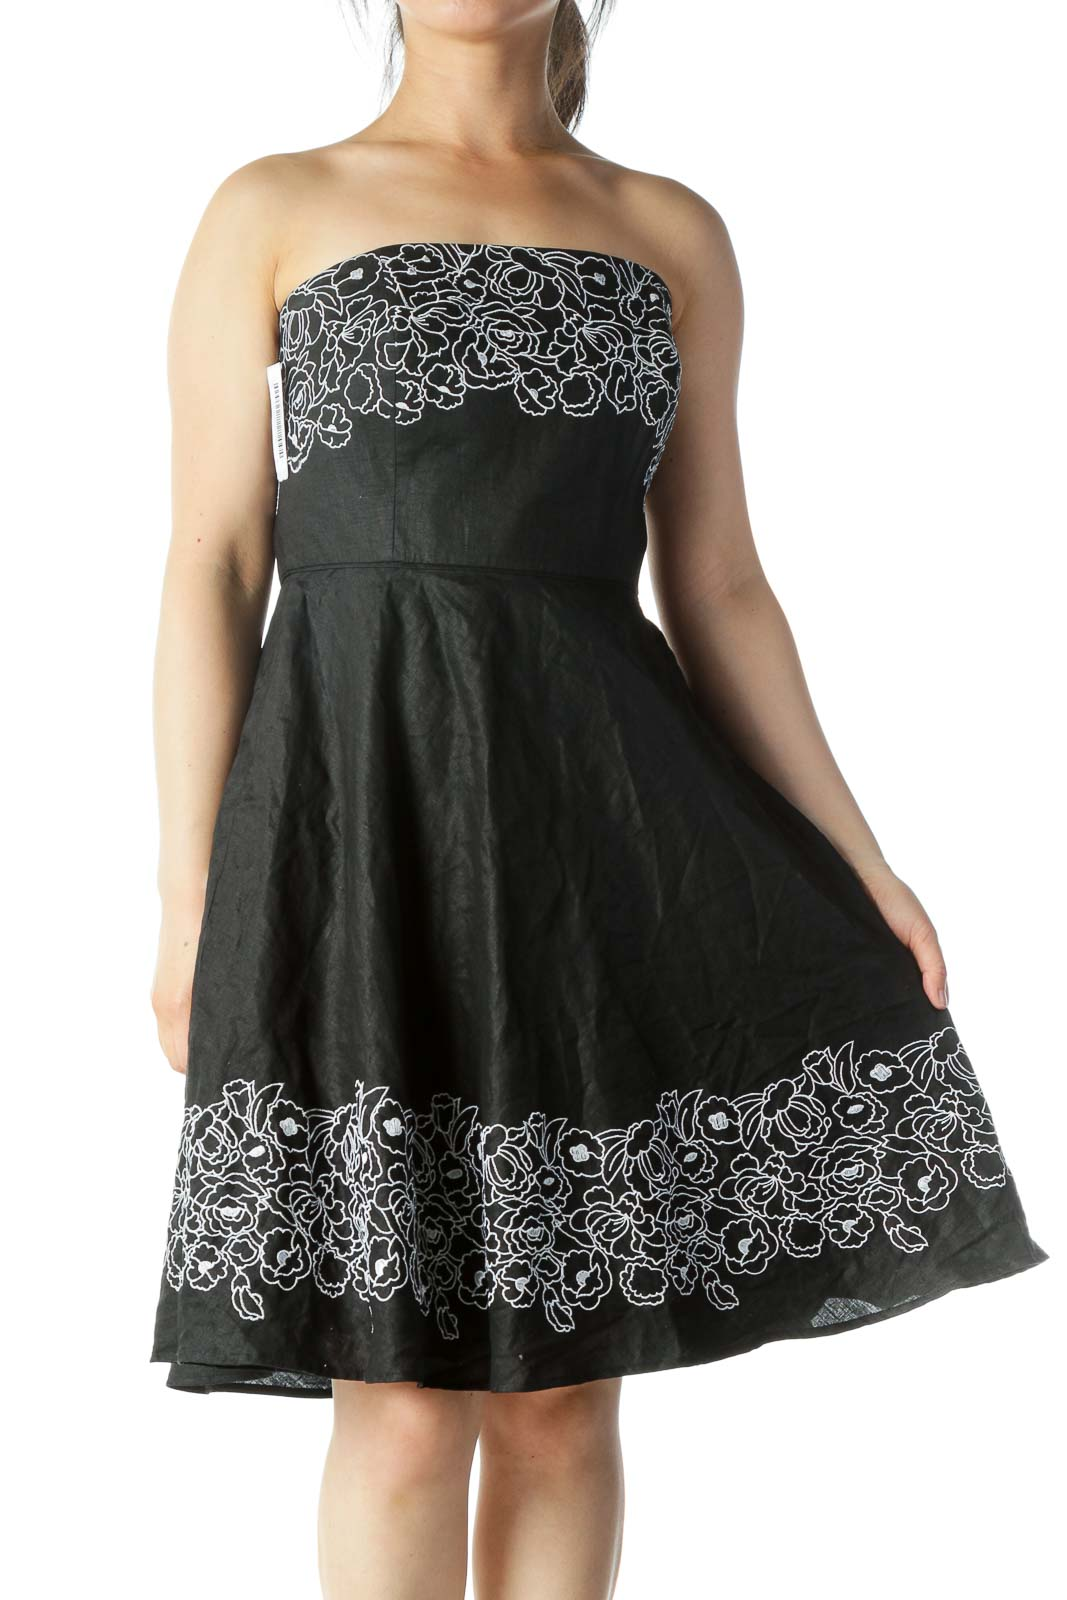 Black with White Floral Embroidery Cocktail Dress